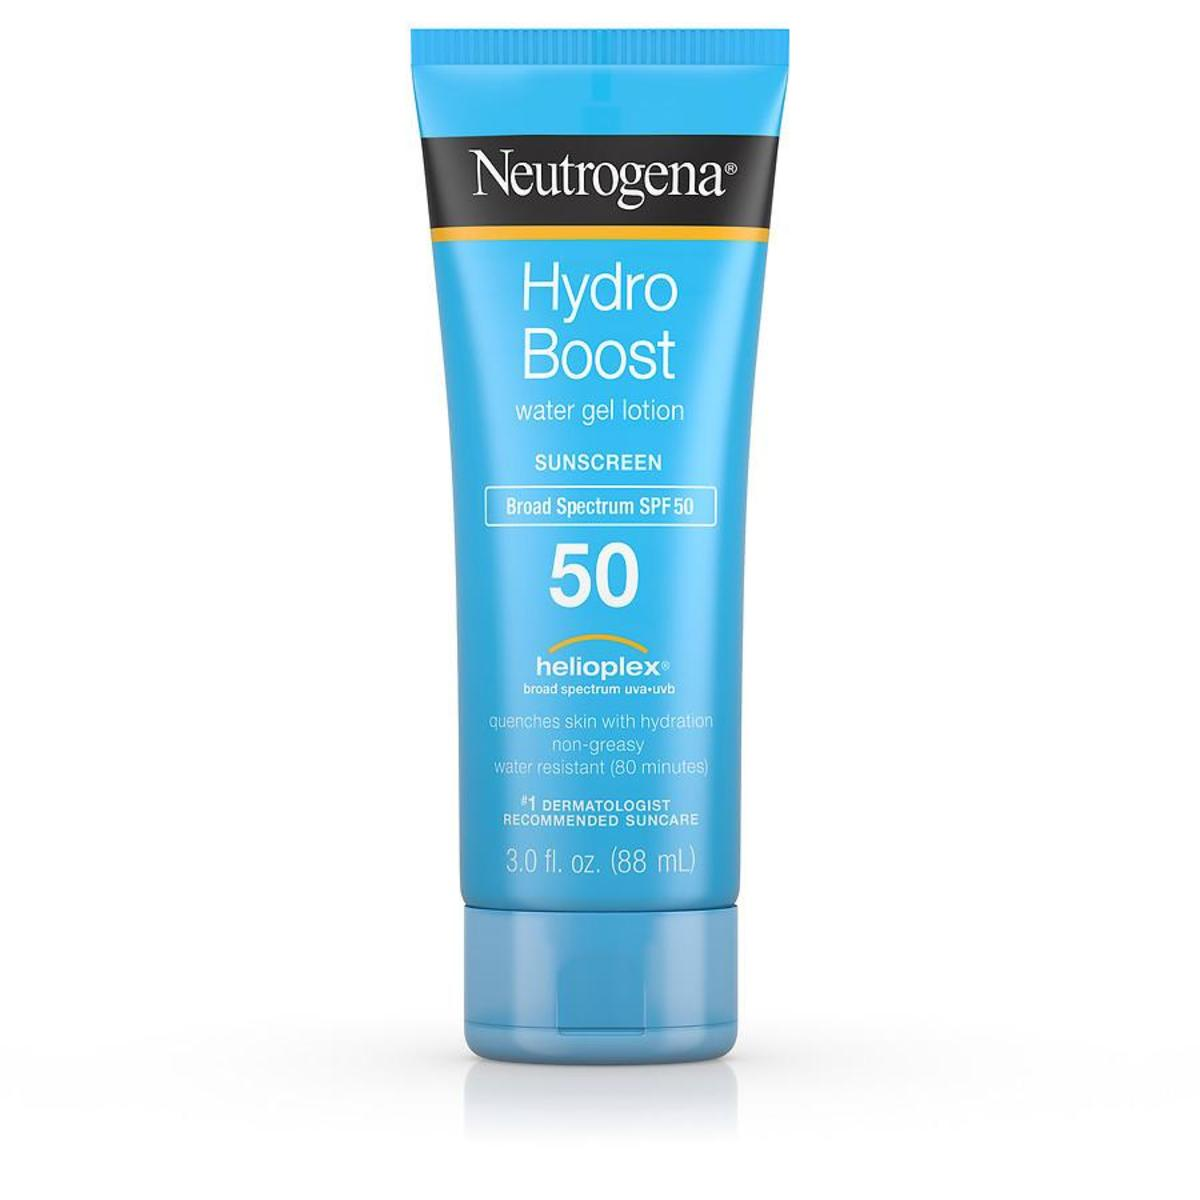 Neutrogena Hydro Boost Water Gel Lotion Sunscreen Broad-Spectrum SPF 50, $10.99, available here.